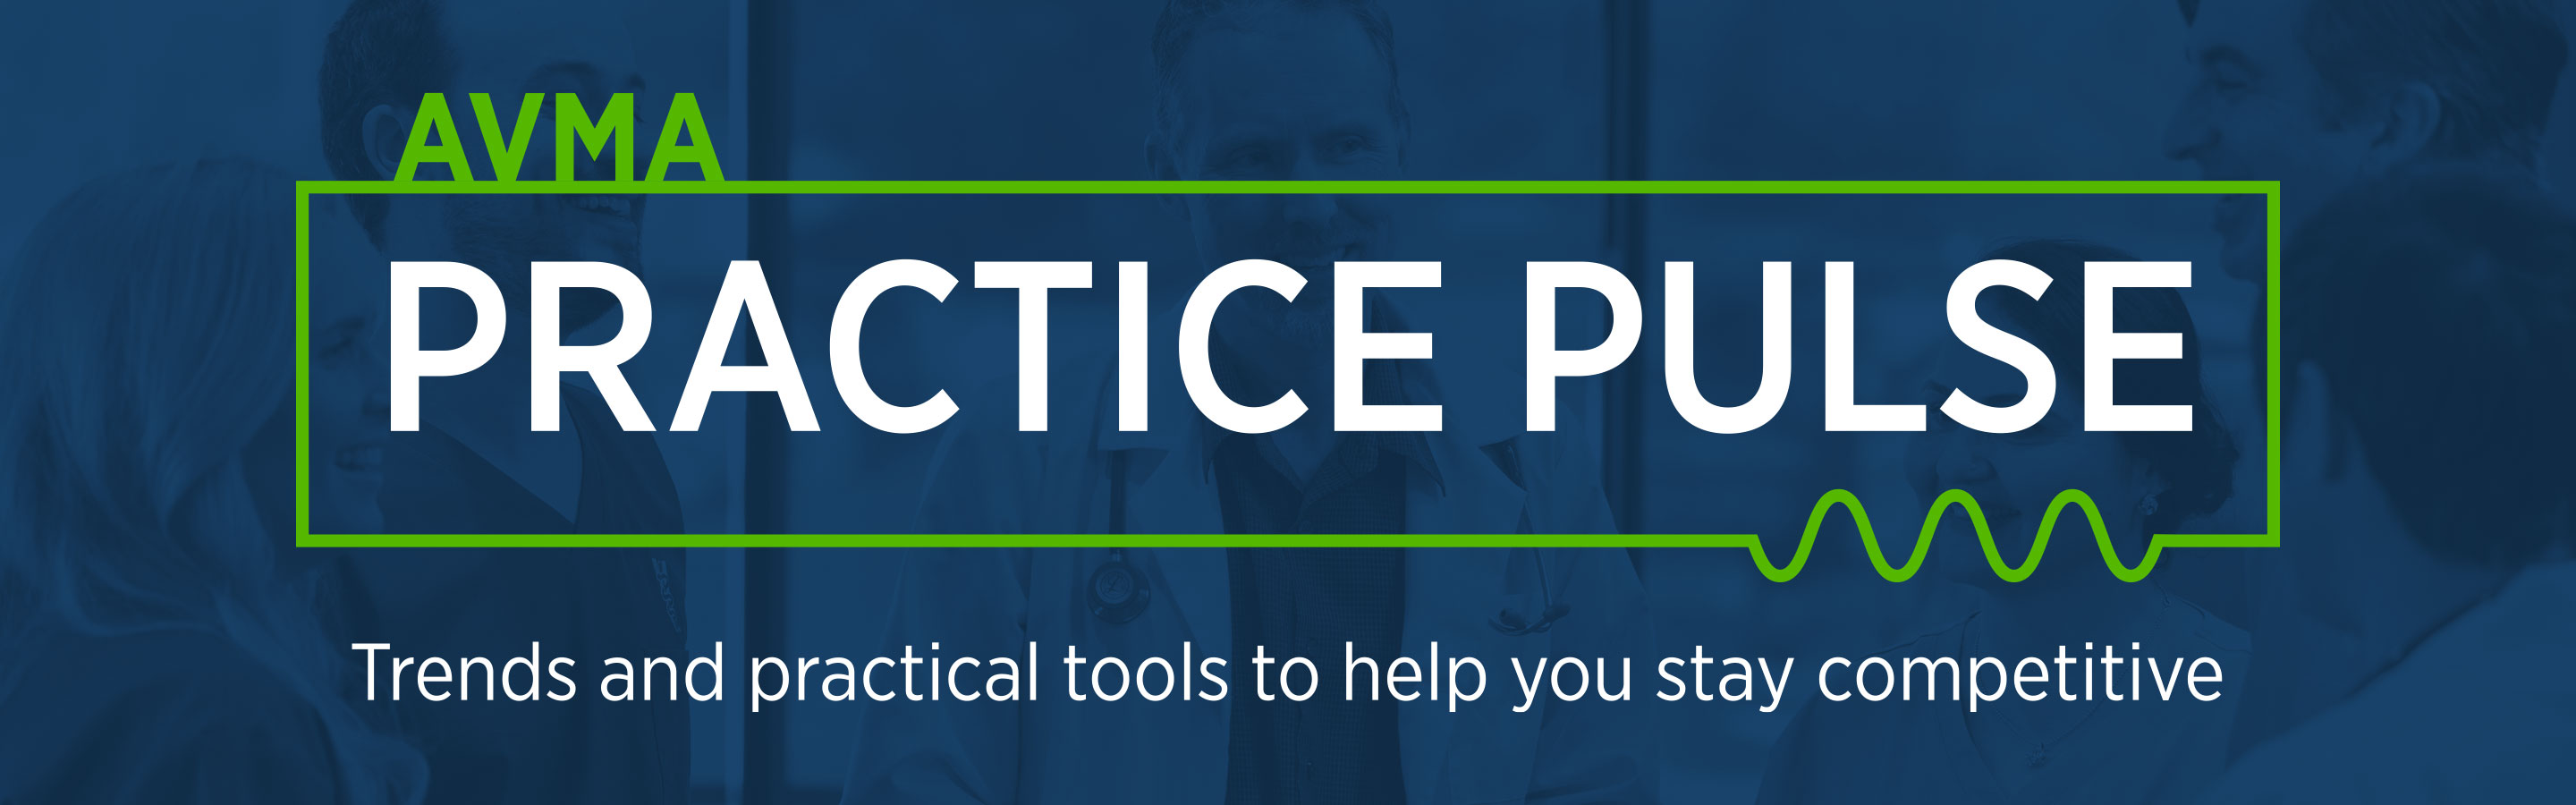 AVMA Practice Pulse: Trends and practice tools to help veterinarians stay competitive